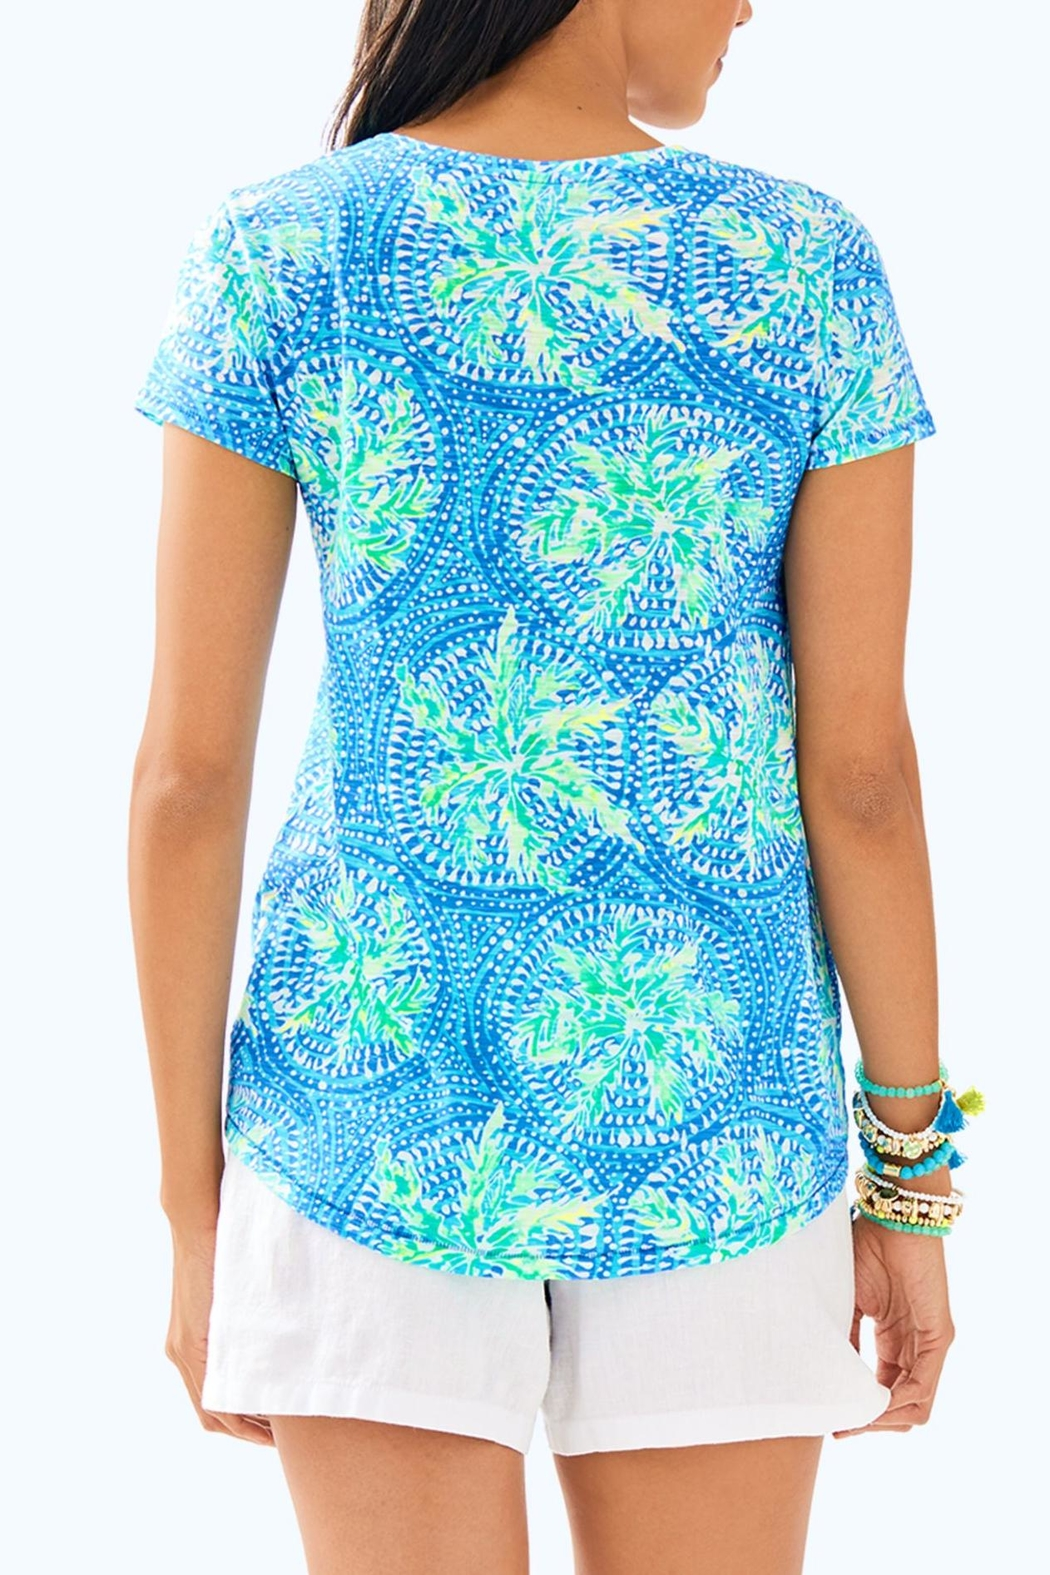 Lilly Pulitzer Etta V-Neck Top - Front Full Image